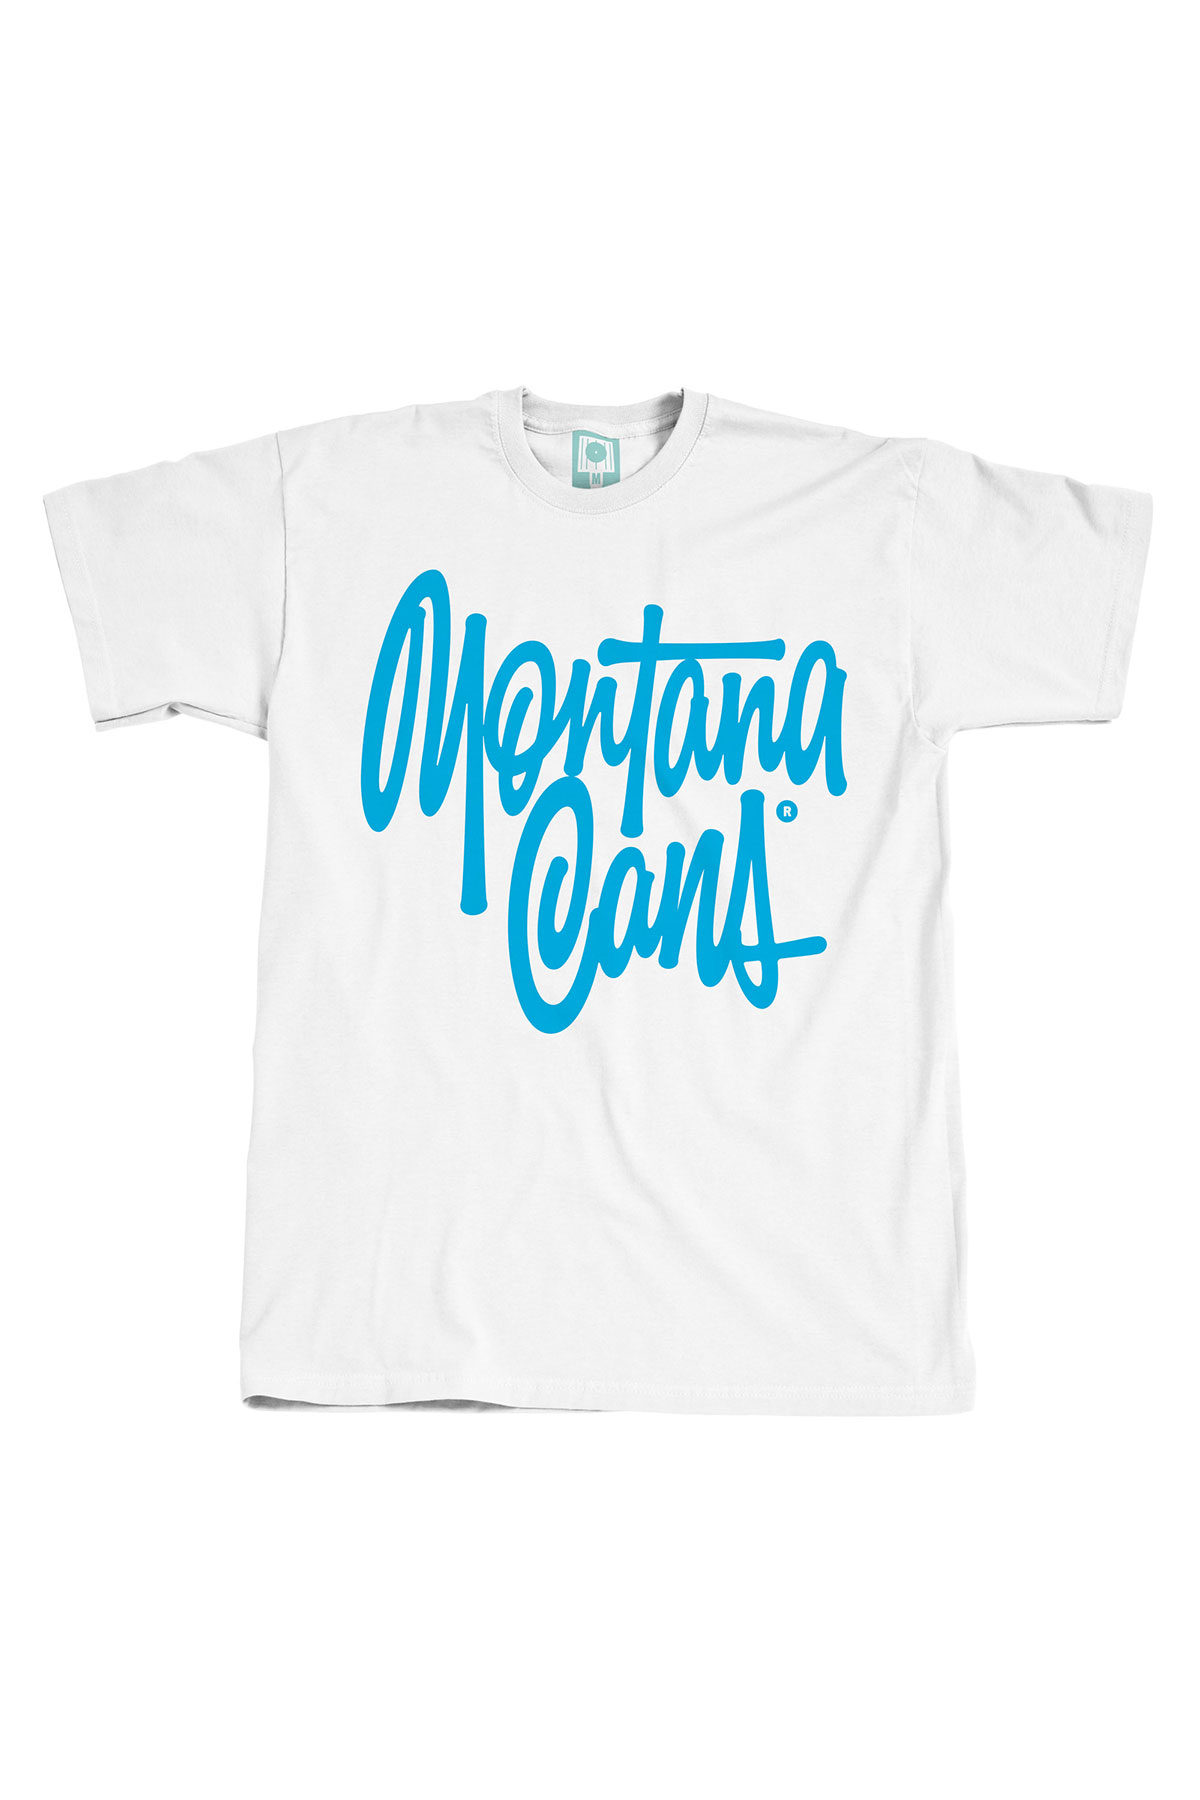 Montana TAG T-SHIRT White by Shapiro